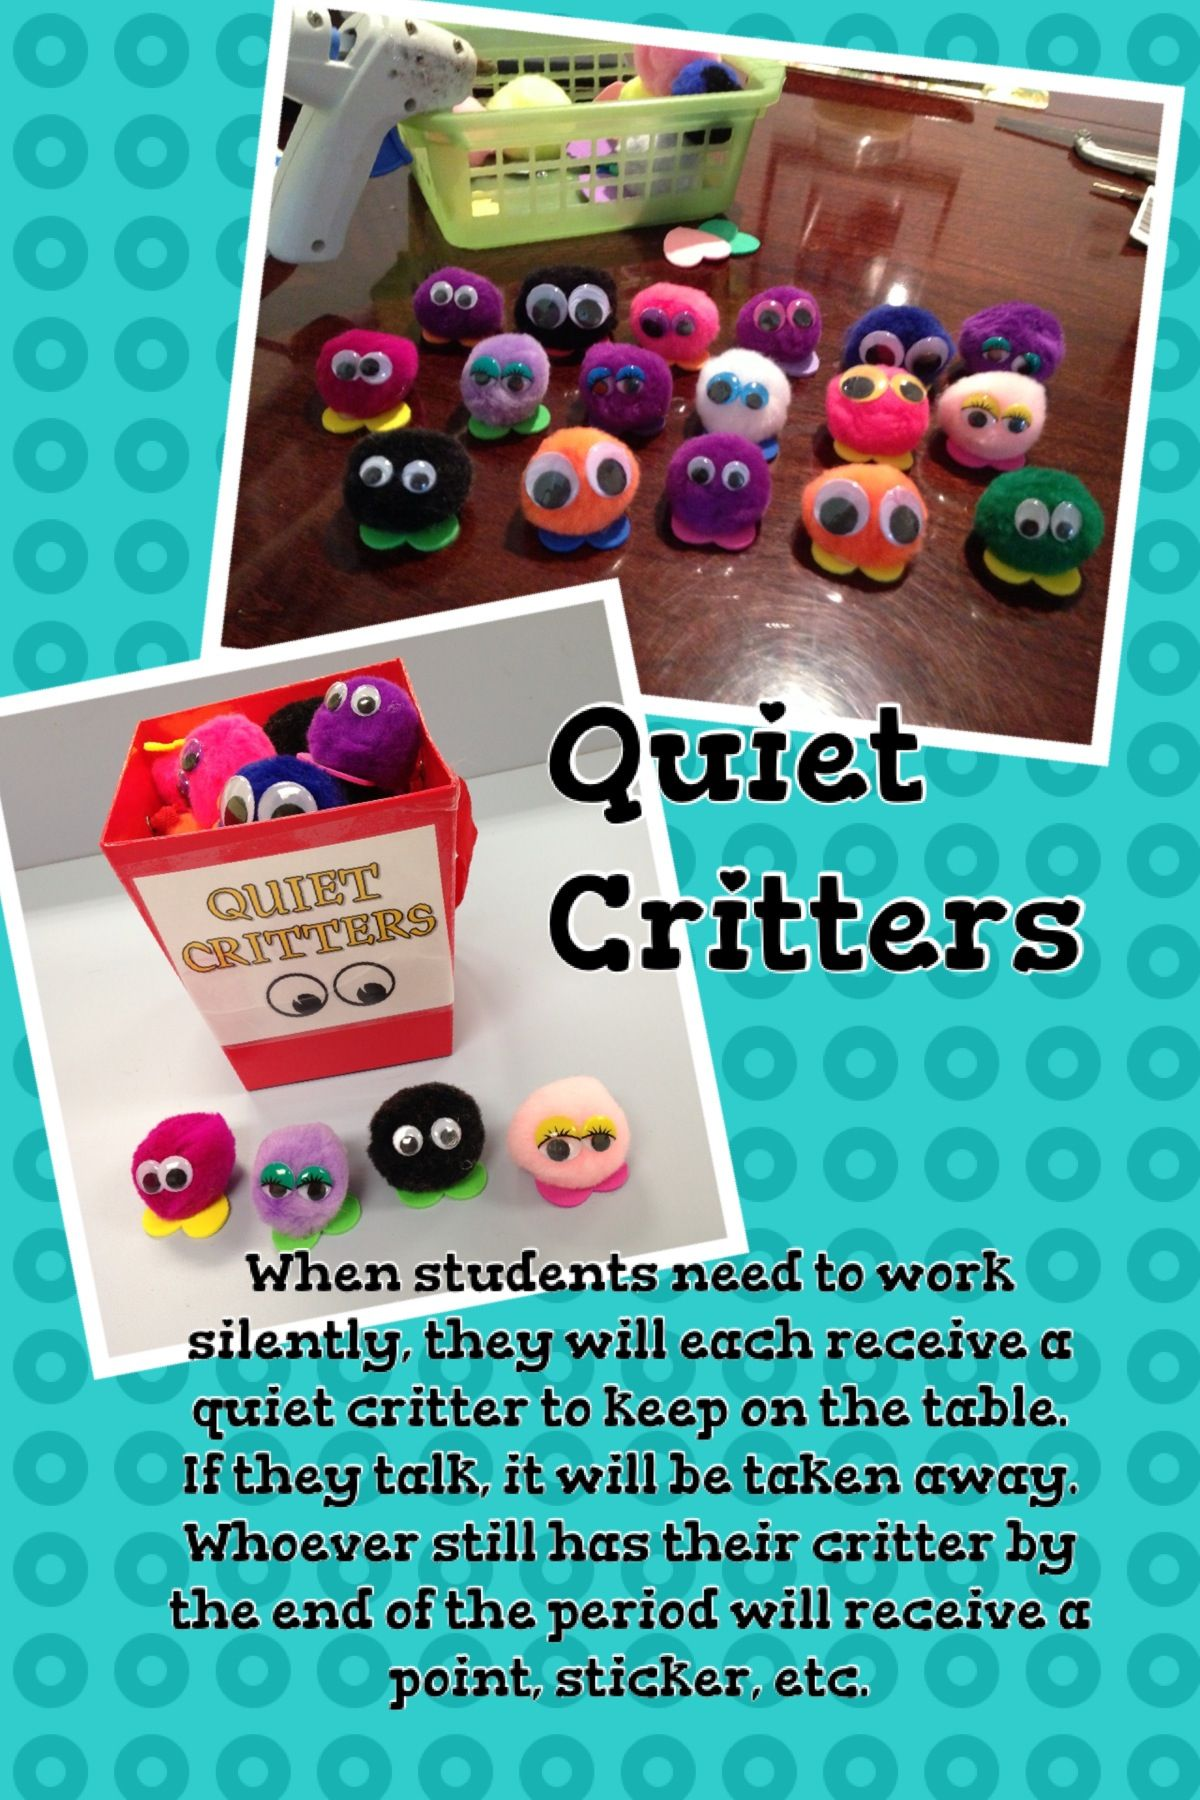 Quiet critters for the classroom Thank you Pinterest